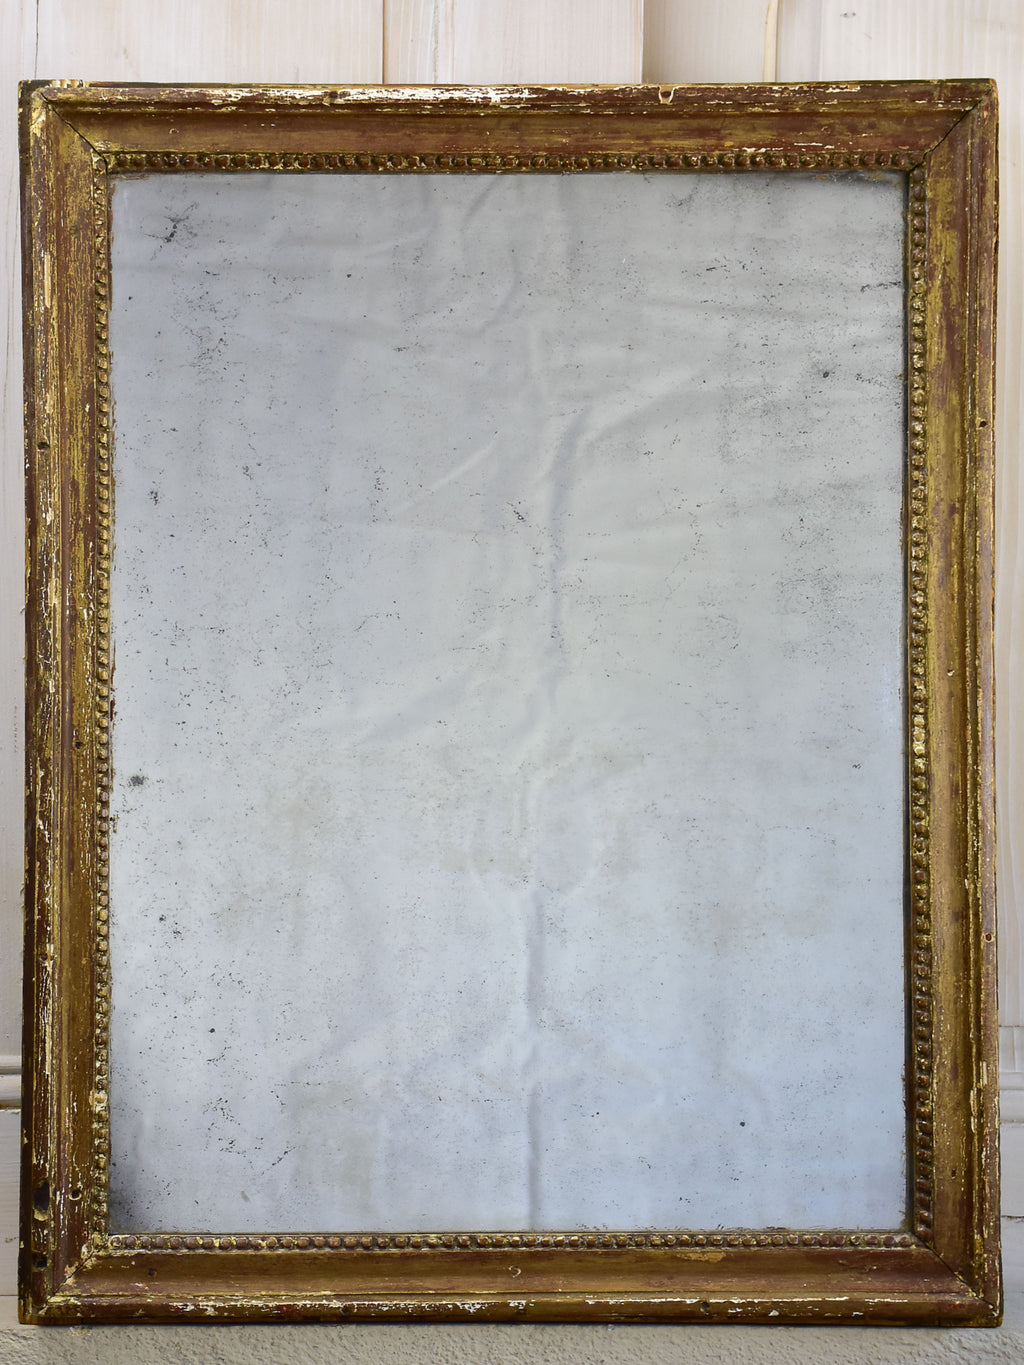 Rustic Louis XVI mirror with gilded frame